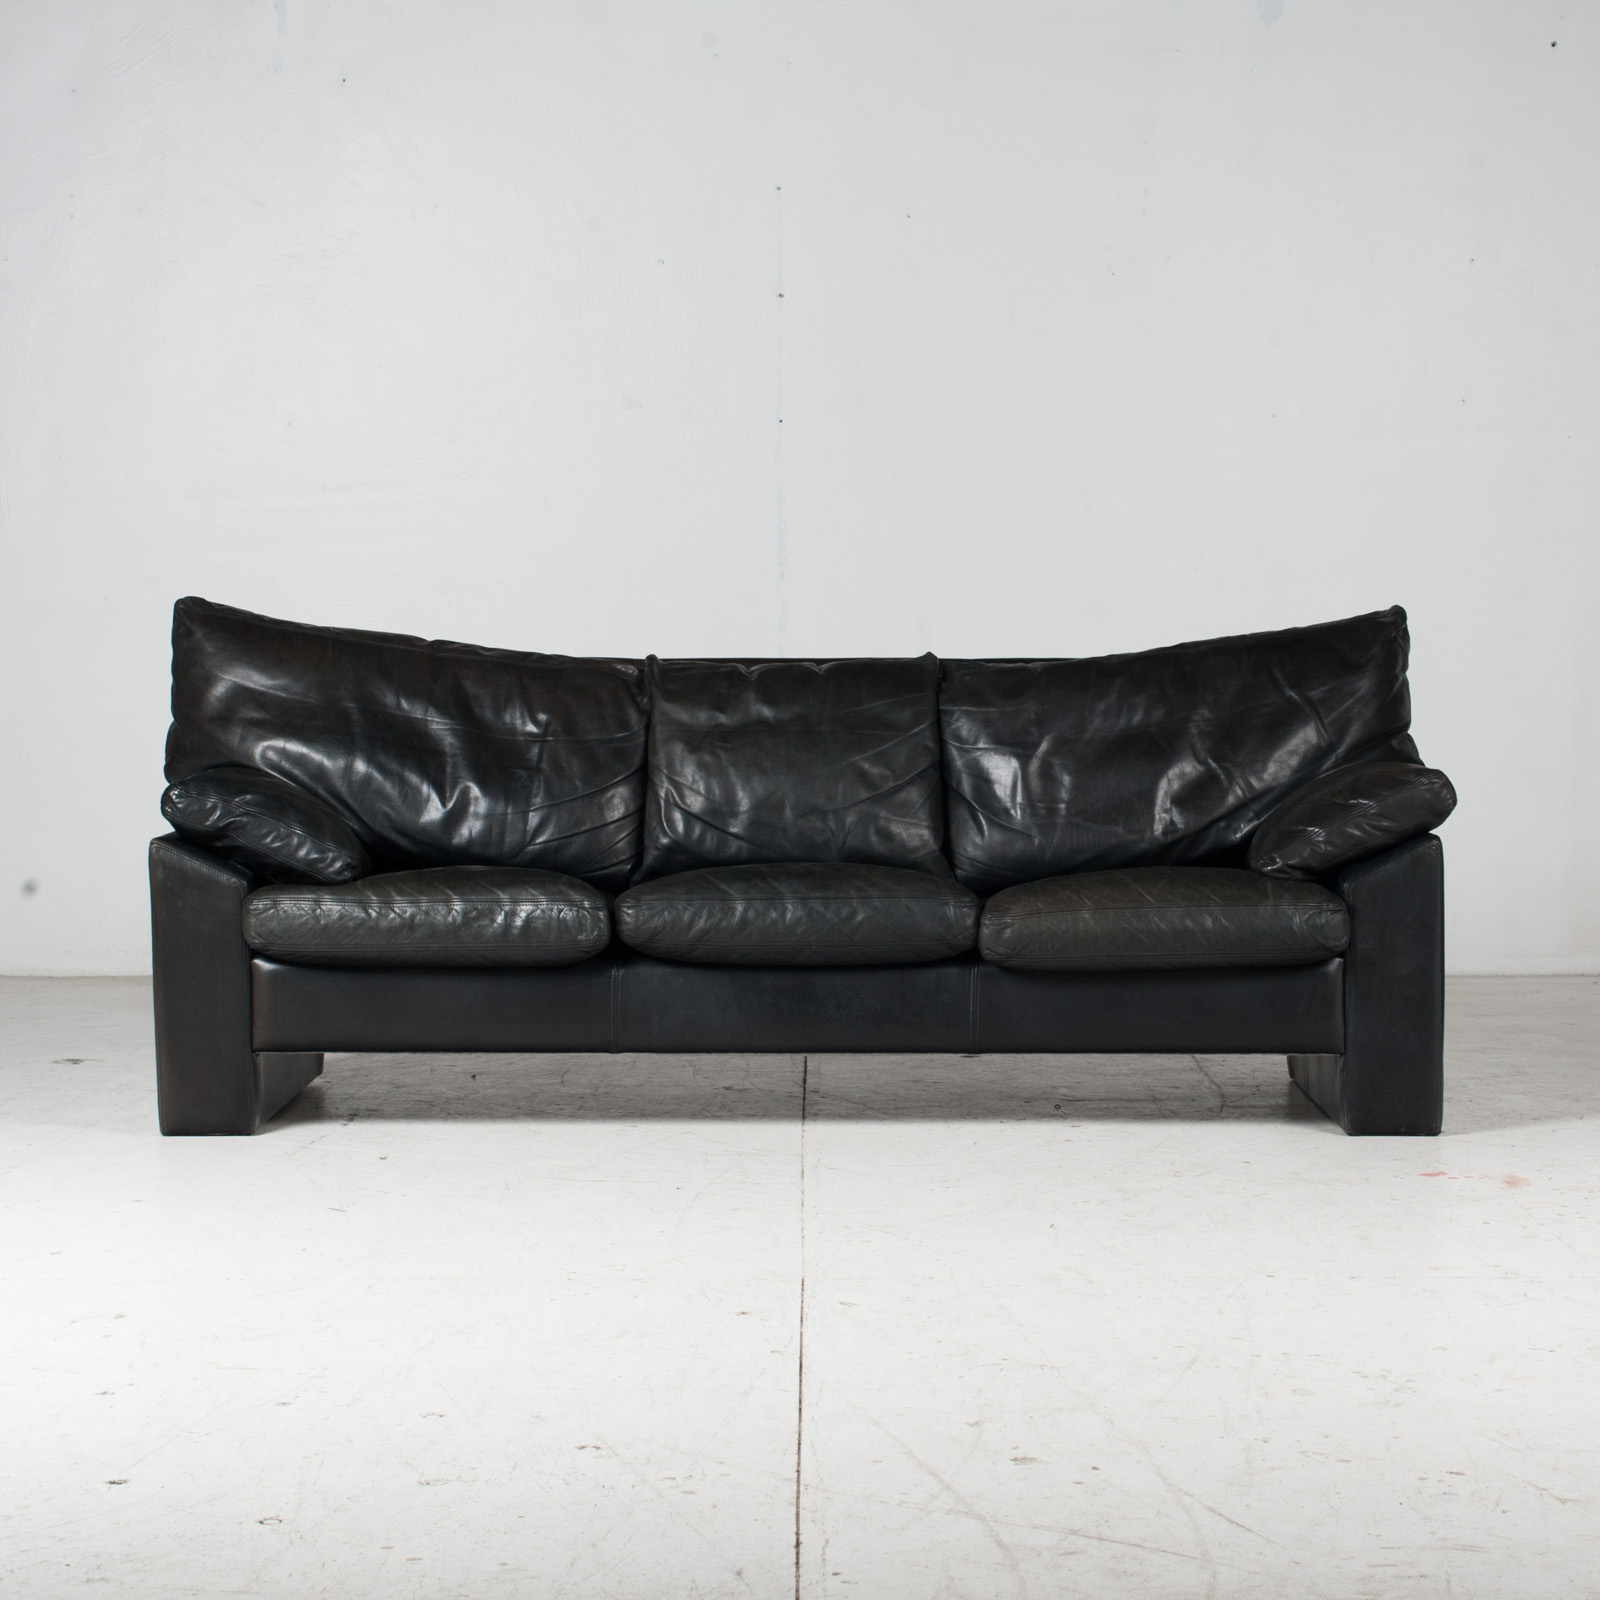 3 Seat Sofa By Stouby In Black Leather, 1960s, Denmark 2